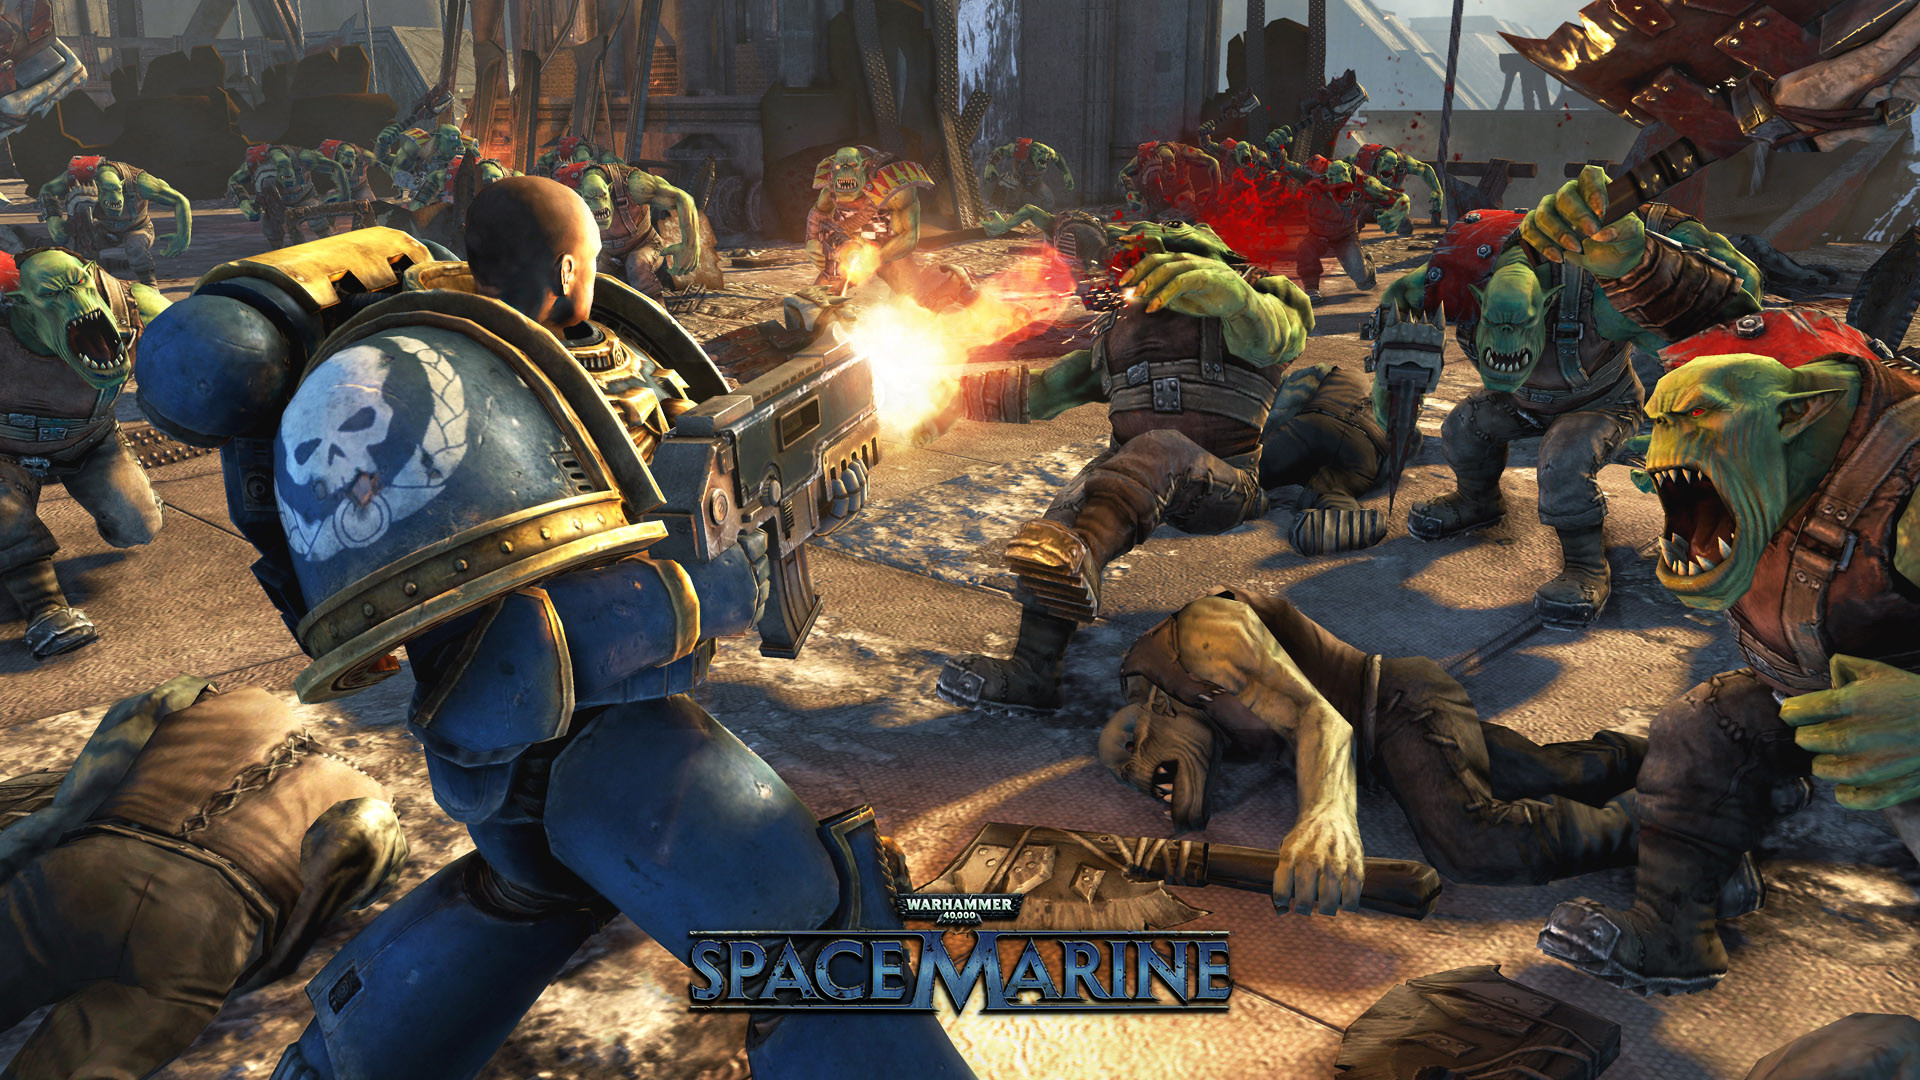 Space Marine, available for PC